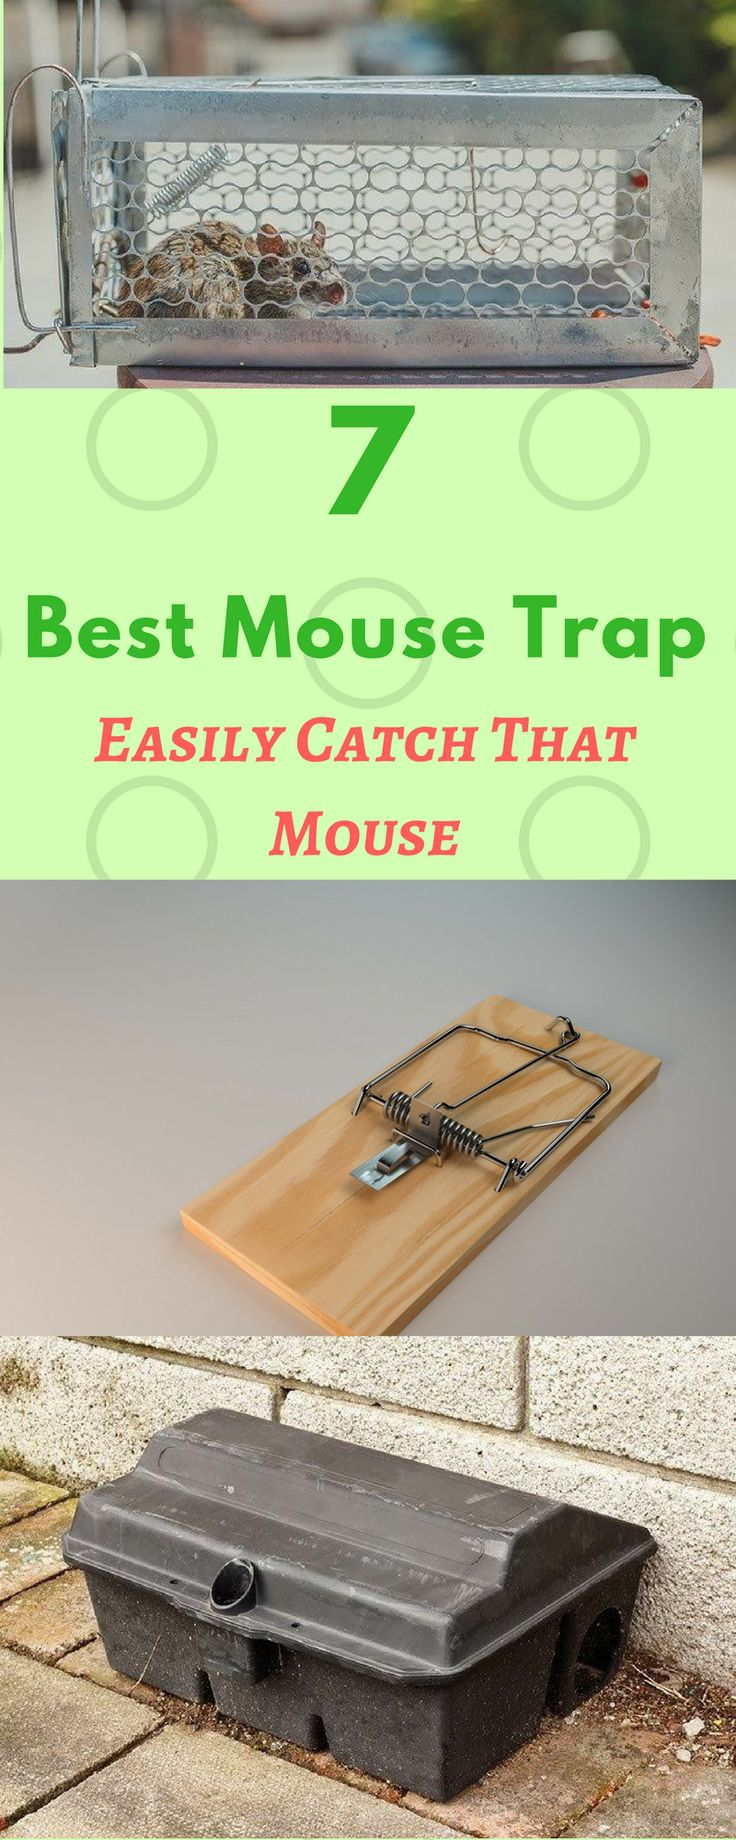 Surely, seeing a live mouse disgusts everyone. You may be tempted to call a pest control professional to address the problem, but it may be not convenient and too costly. Why not invest more simply and cheaply – the best mouse trap!   But, still uncertain what brand to buy? No biggies! Consider any of these best mouse traps you can buy for your next shopping.